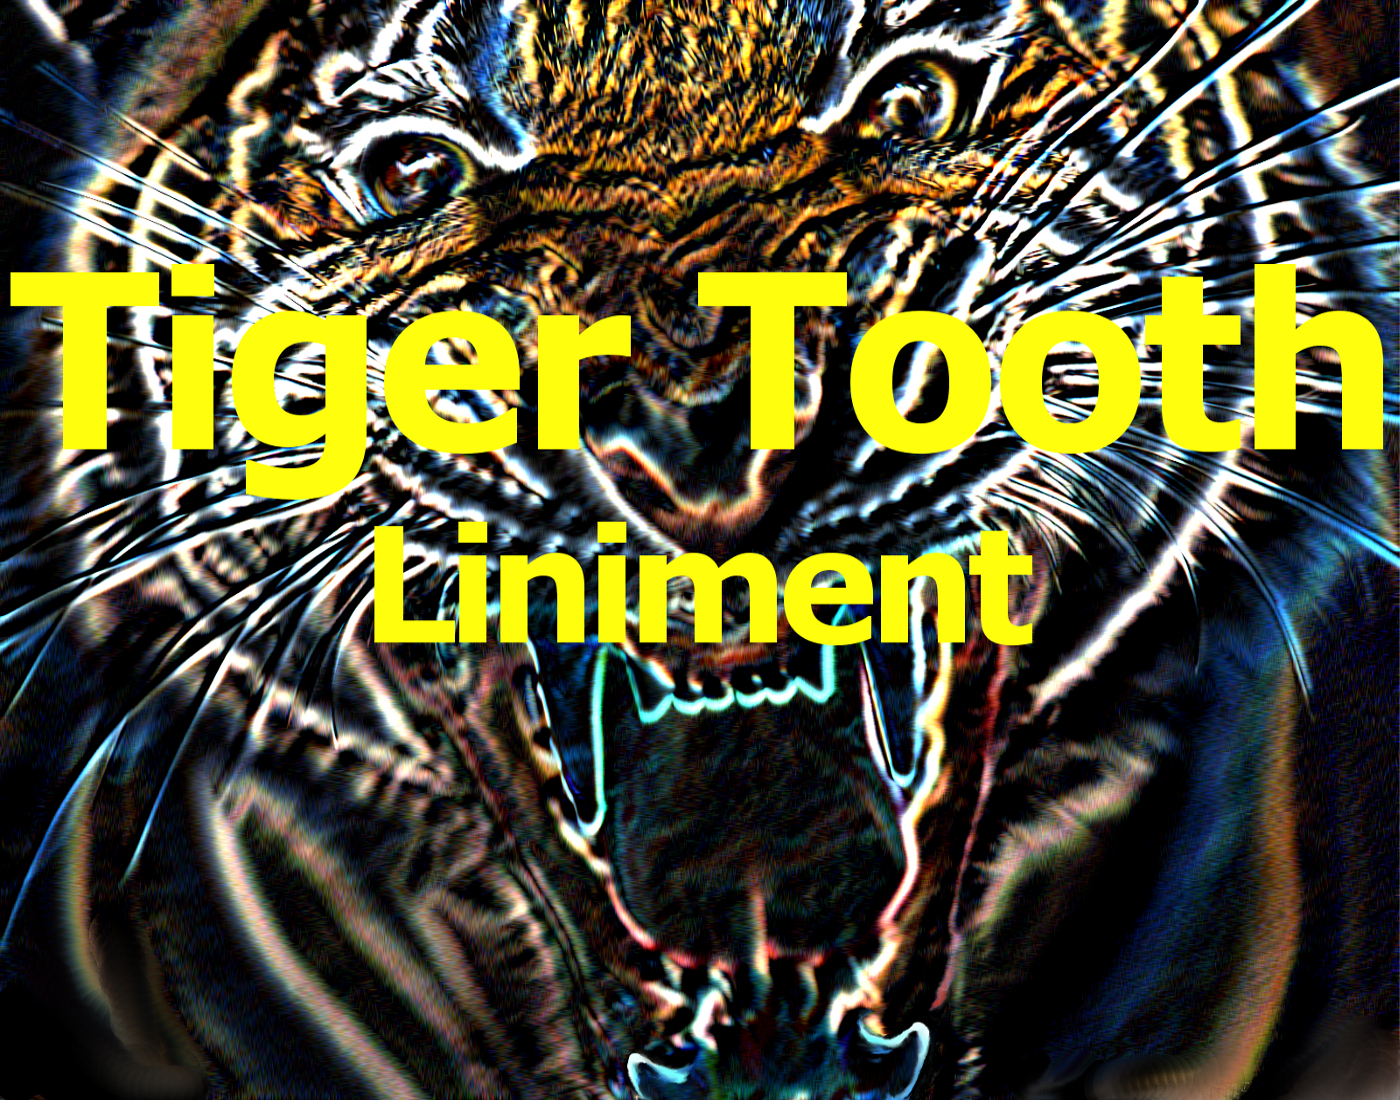 TigerTooth